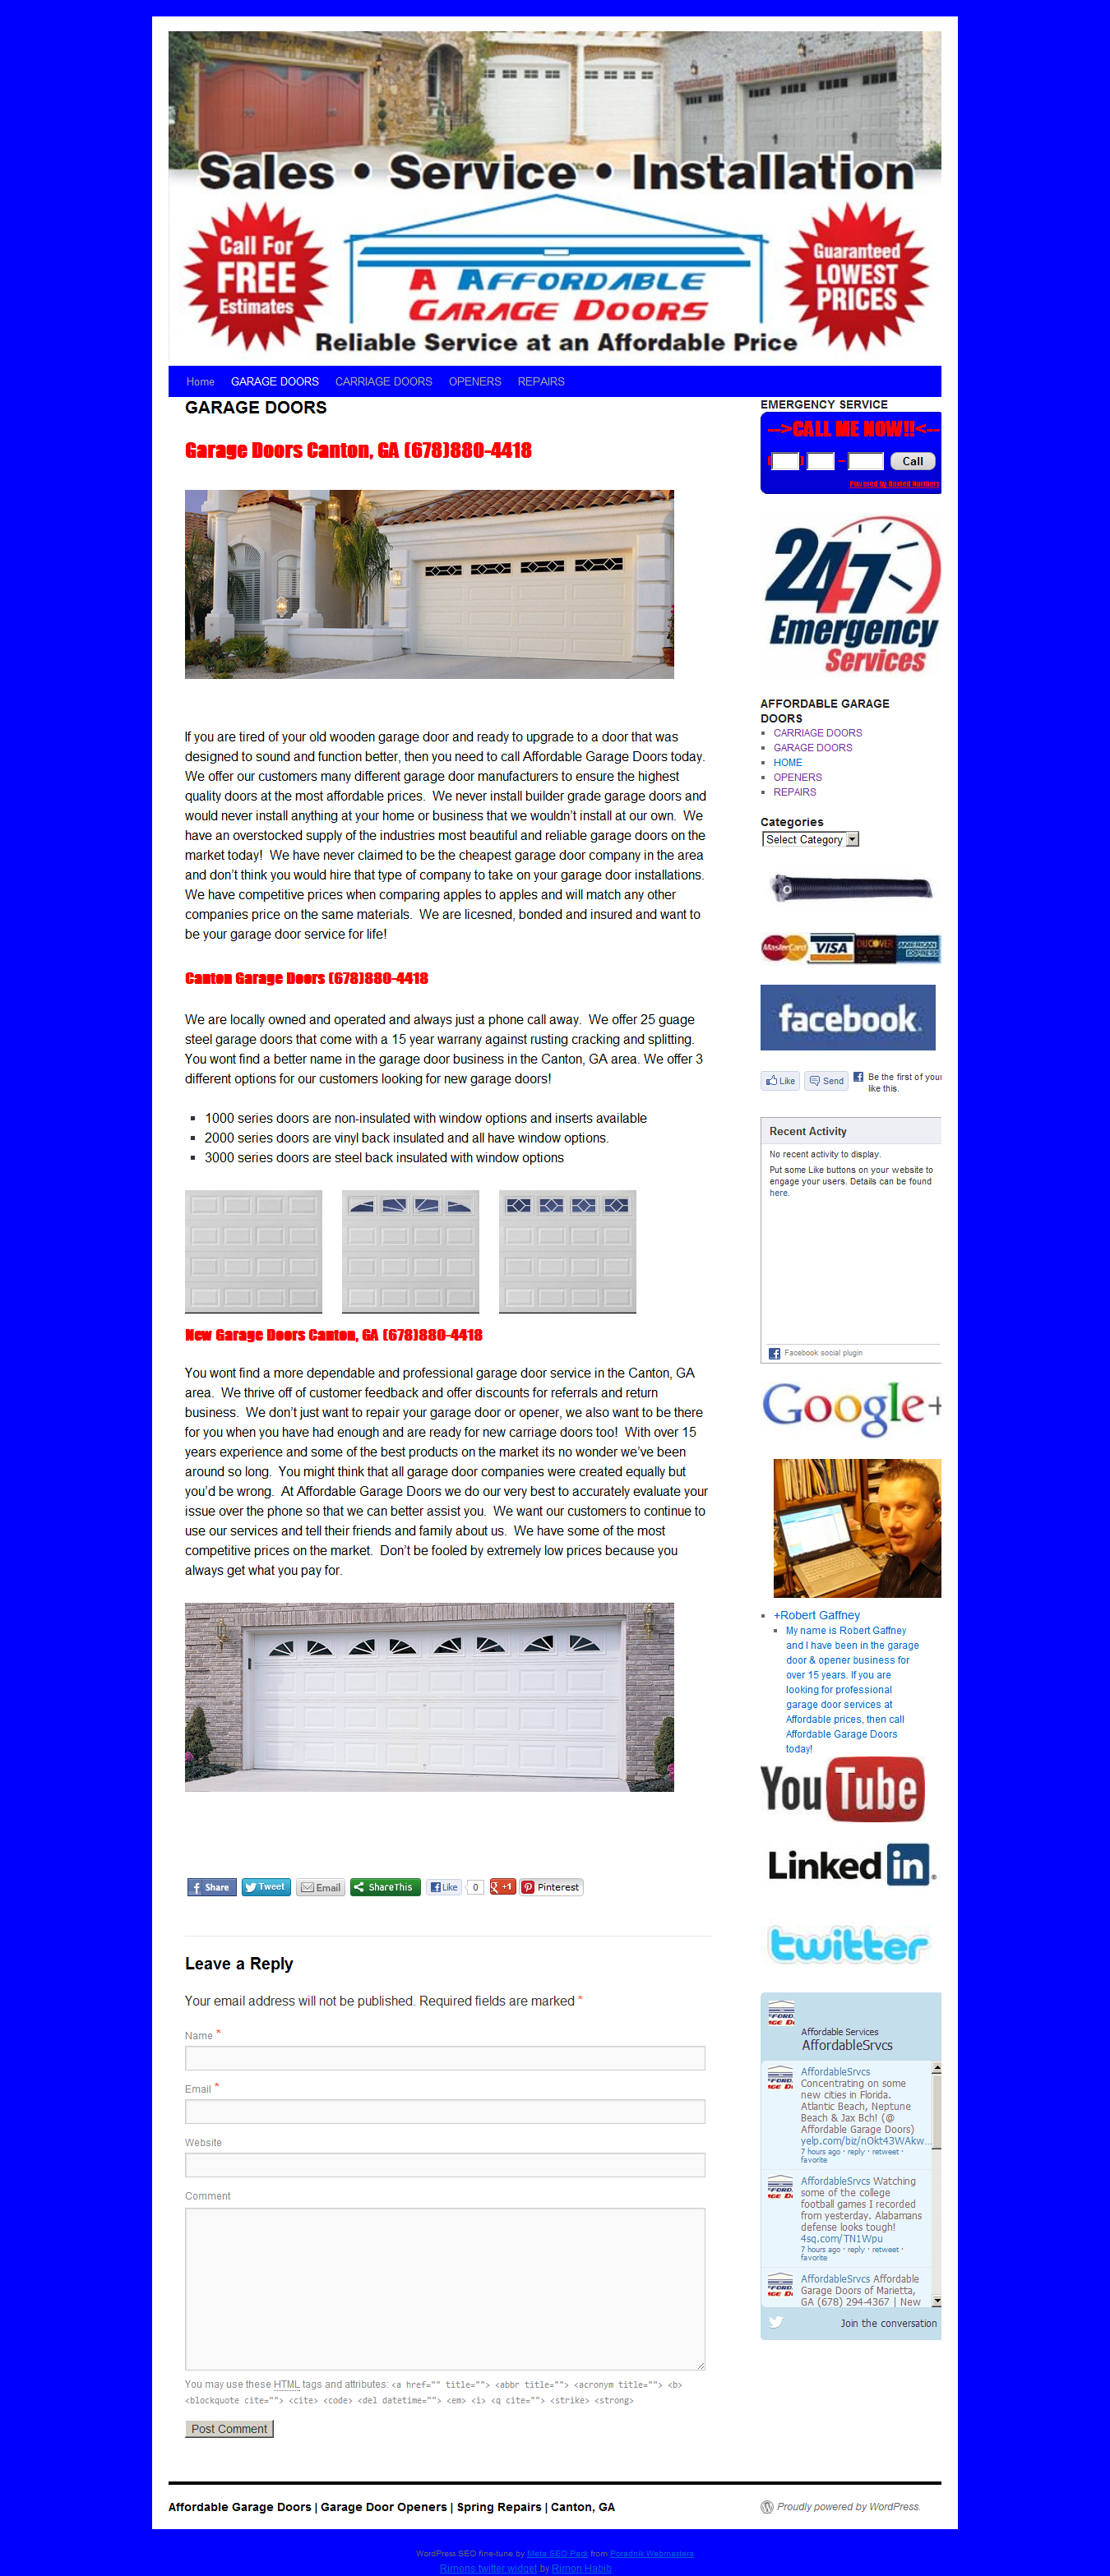 Affordable Garage Doors Have Been Proudly Providing Professional Garage Door  U0026 Opener Services For The Canton U0026 Woodstock, GA Areas For Over 15 Years U003eu003e  ...